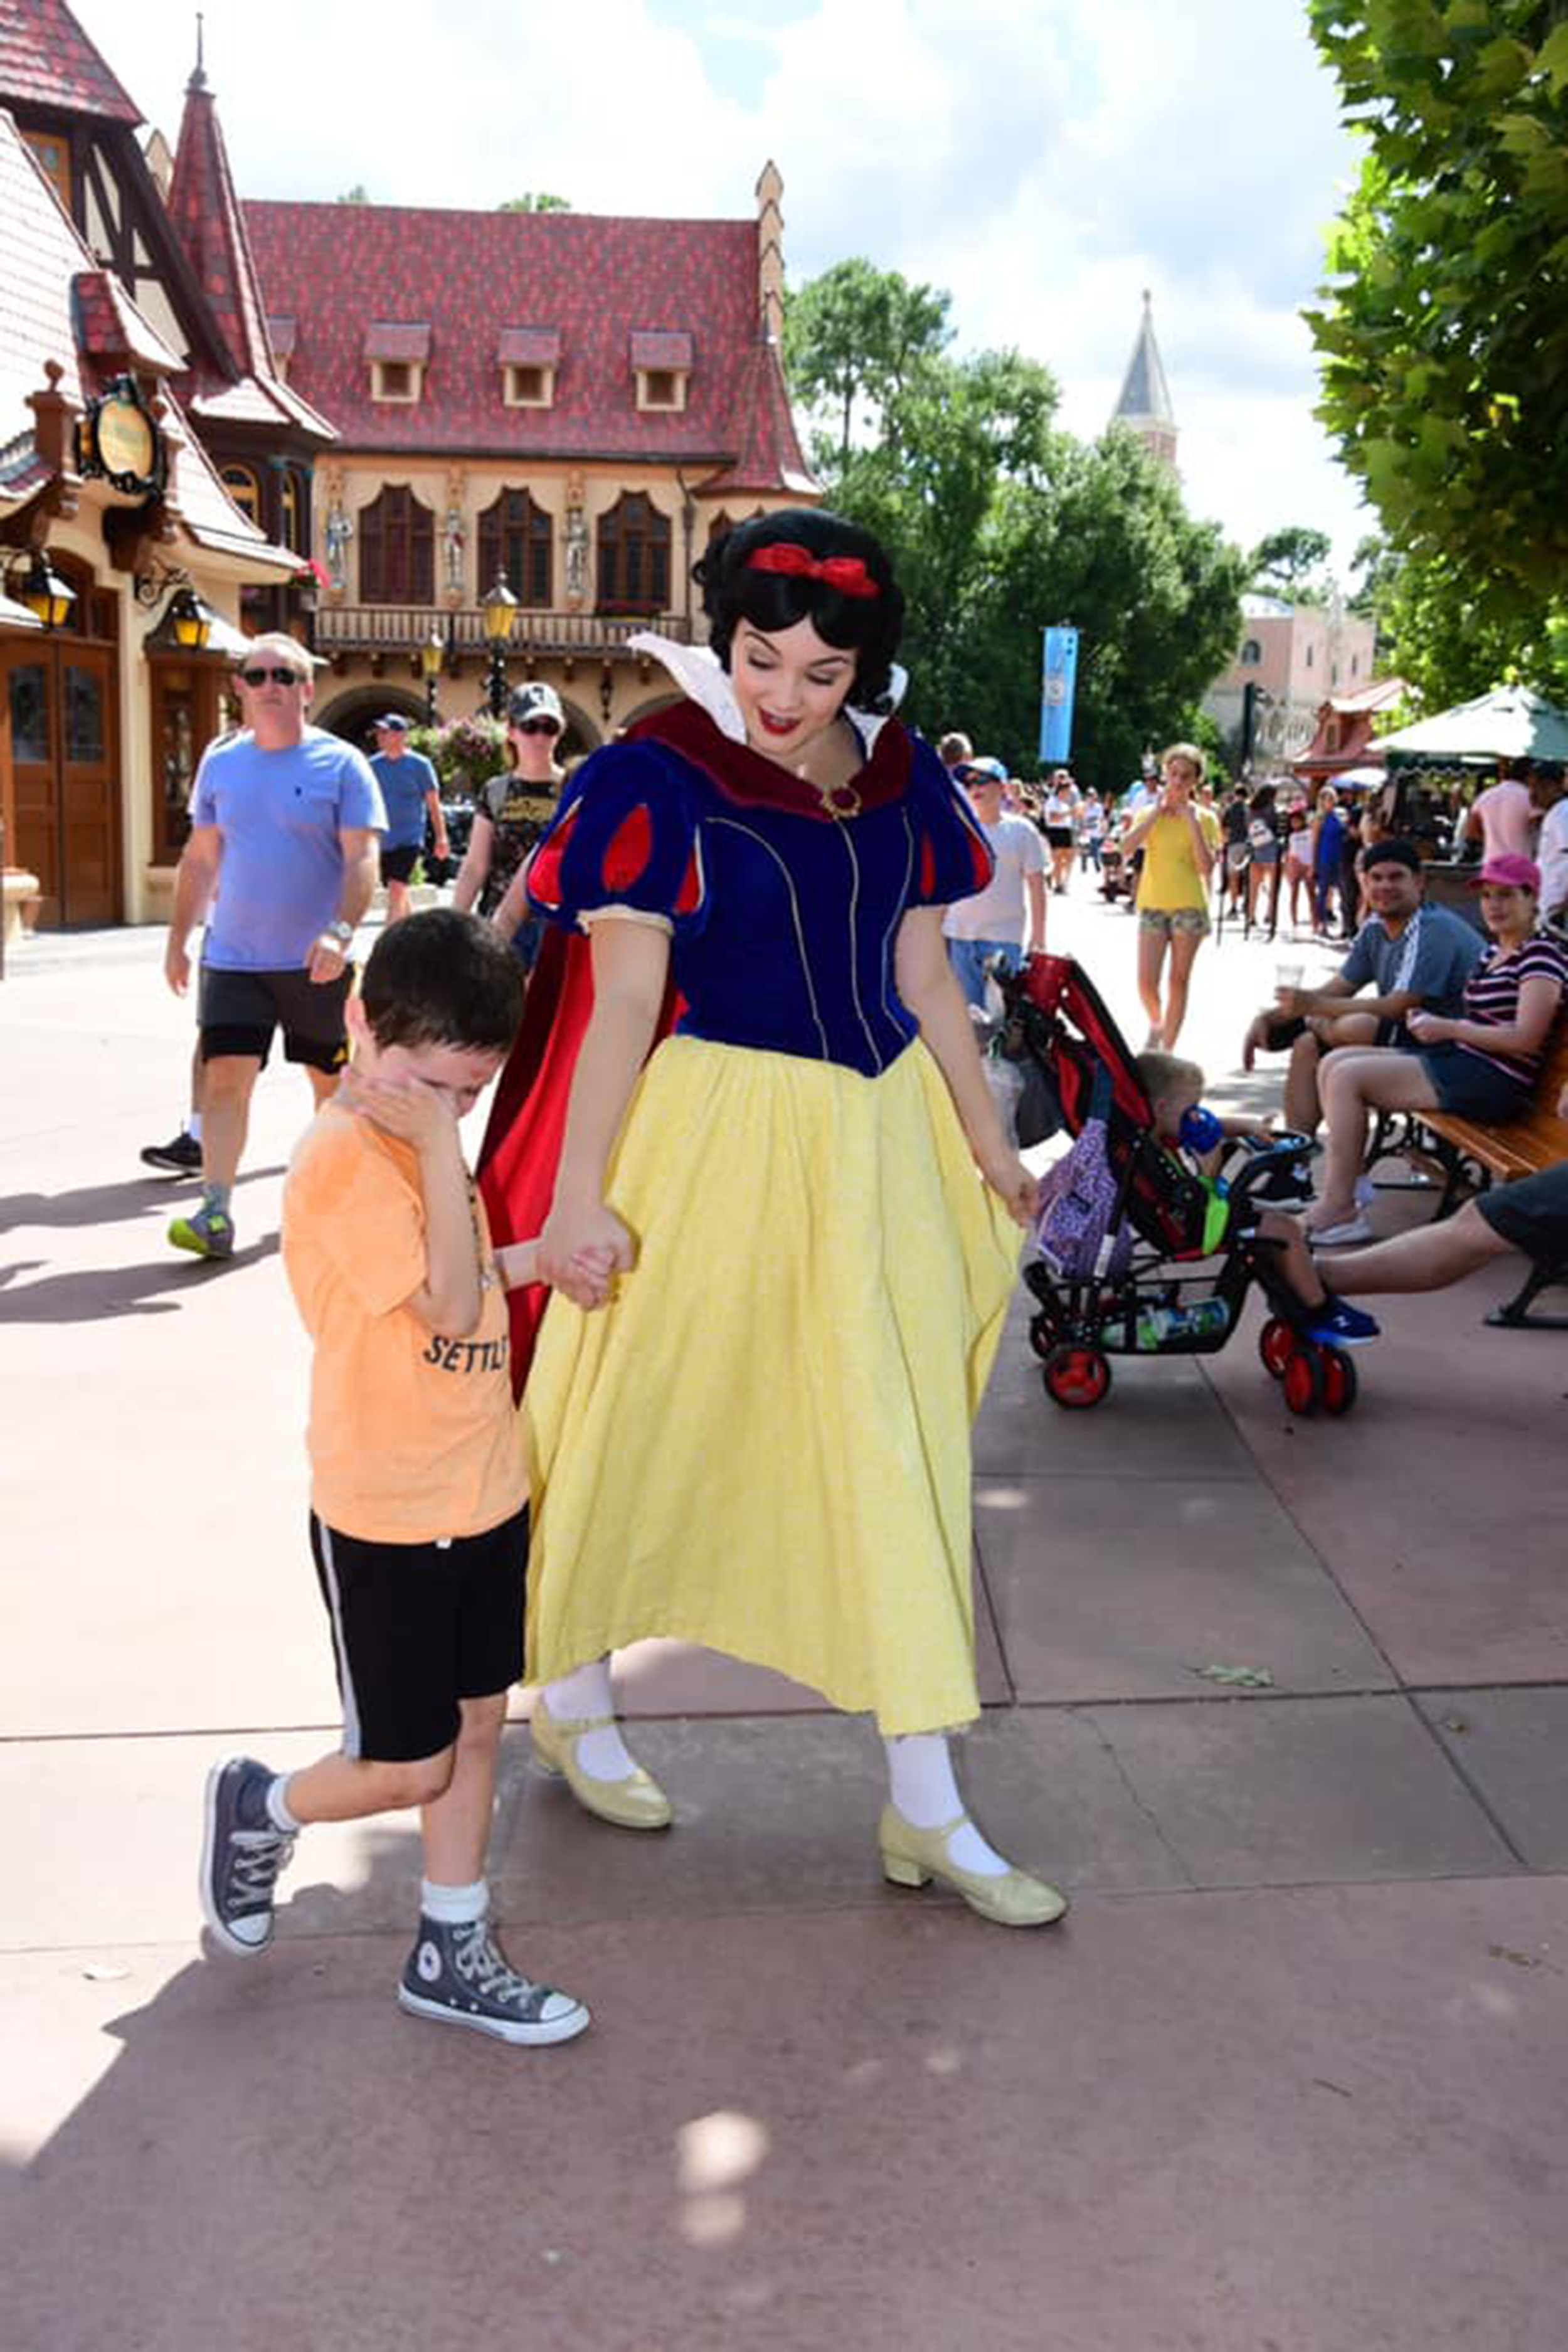 Snow White soothes little boy